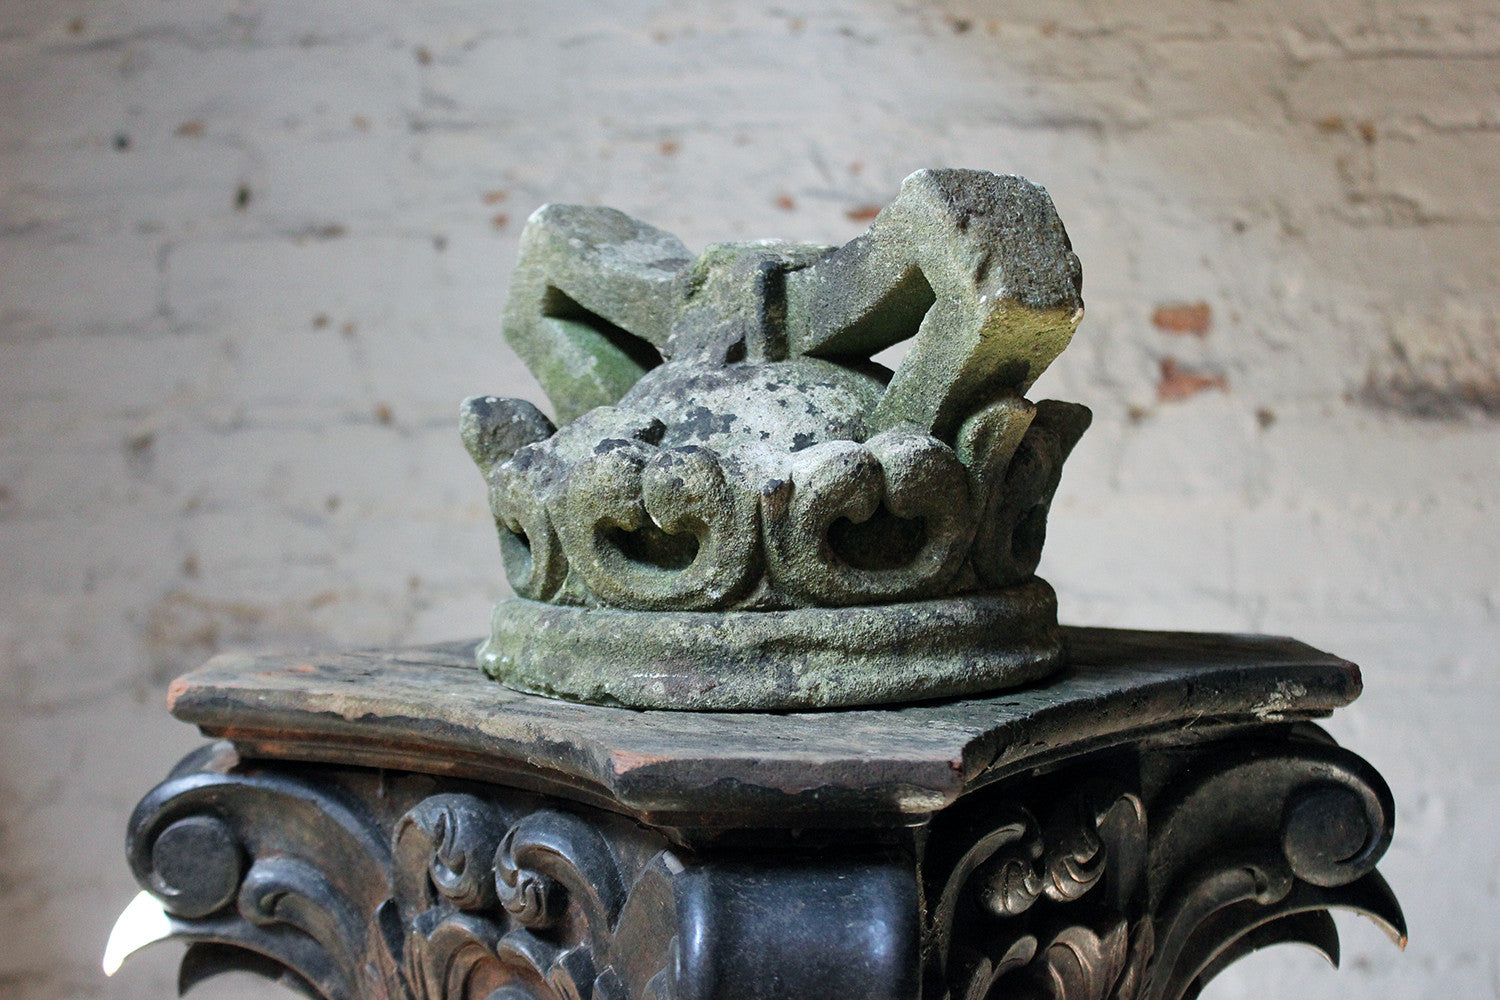 A Superb French Caen Limestone Carving in the Form of a Hooped Crown c.1840-60